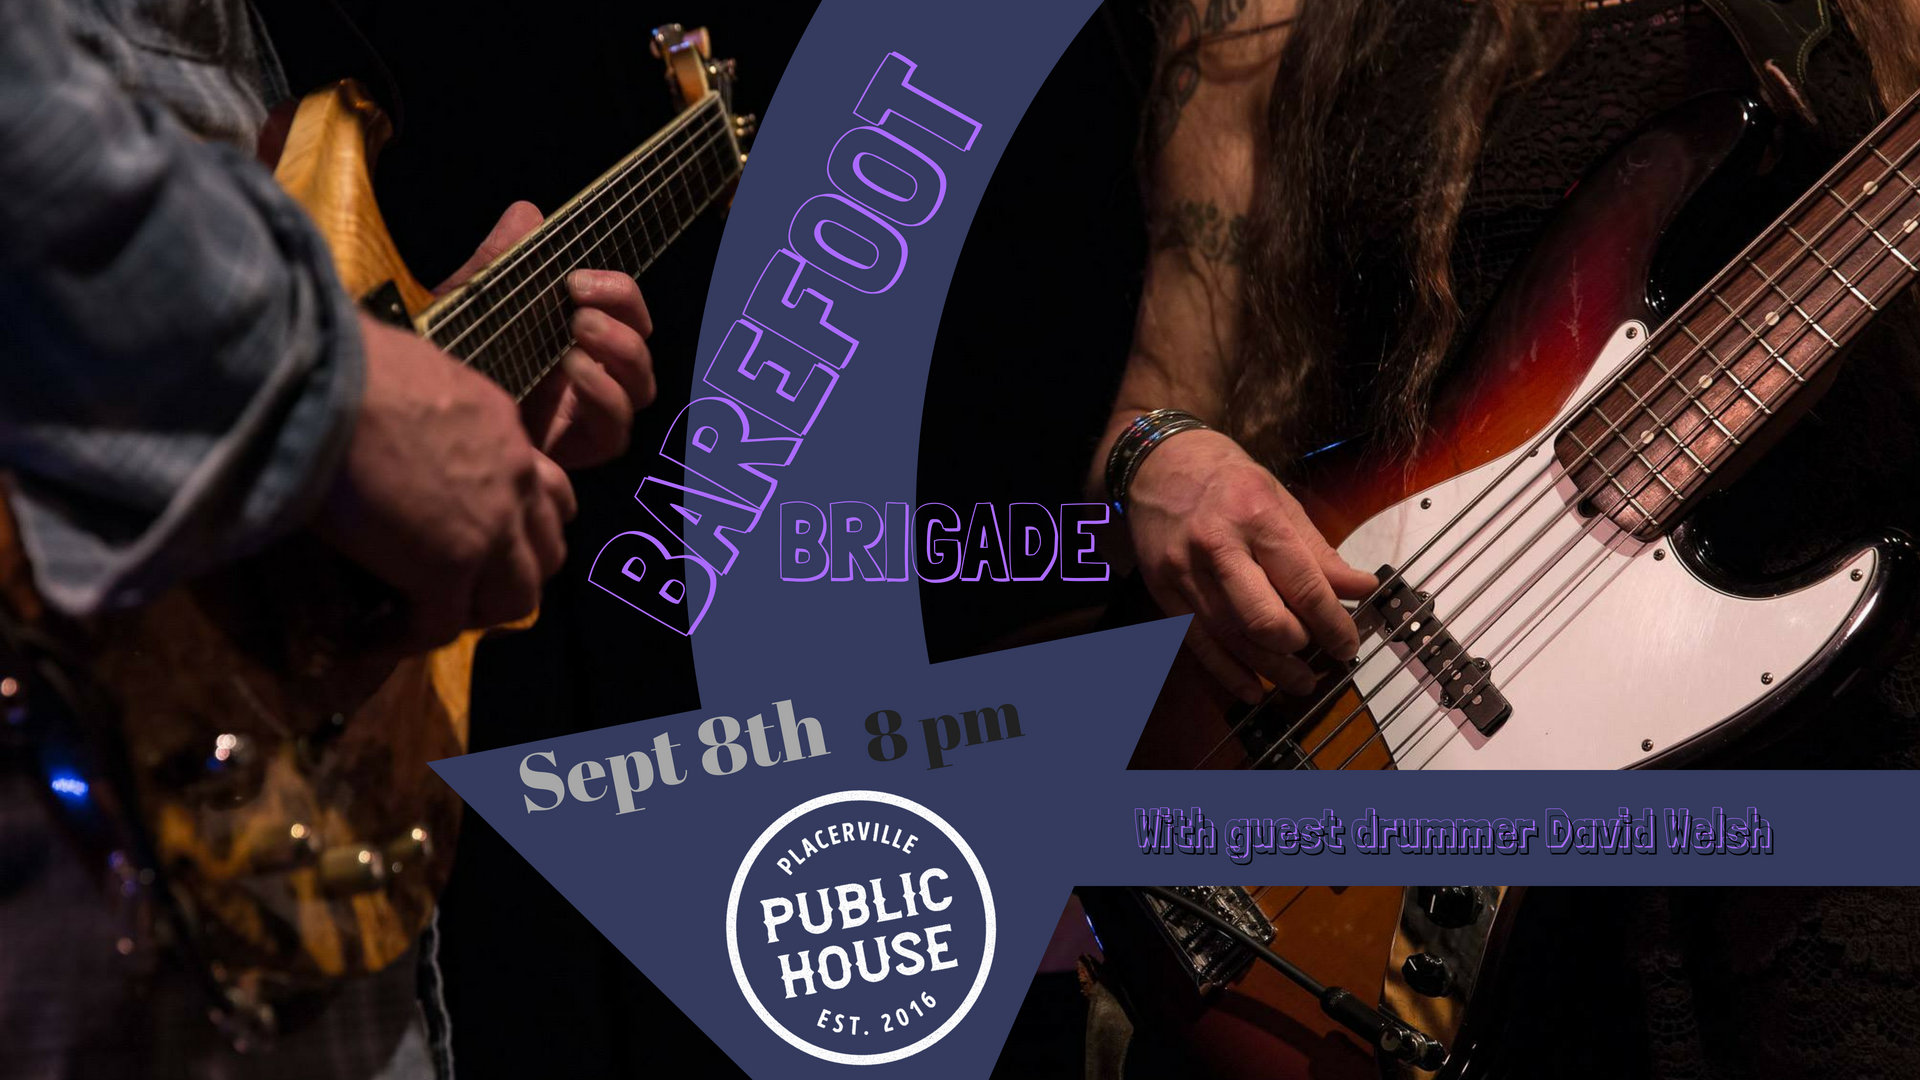 Matt Hartle and Jen Rund bring their foot-stomping fun back to the Placerville Public House, this time 'round joined by David Welsh on drums. From David Bowie to Paul Simon, the Dead and Nina Simone, plus original creations, their eclectic selections and on fire improv are guaranteed to start your weekend off on the right foot!